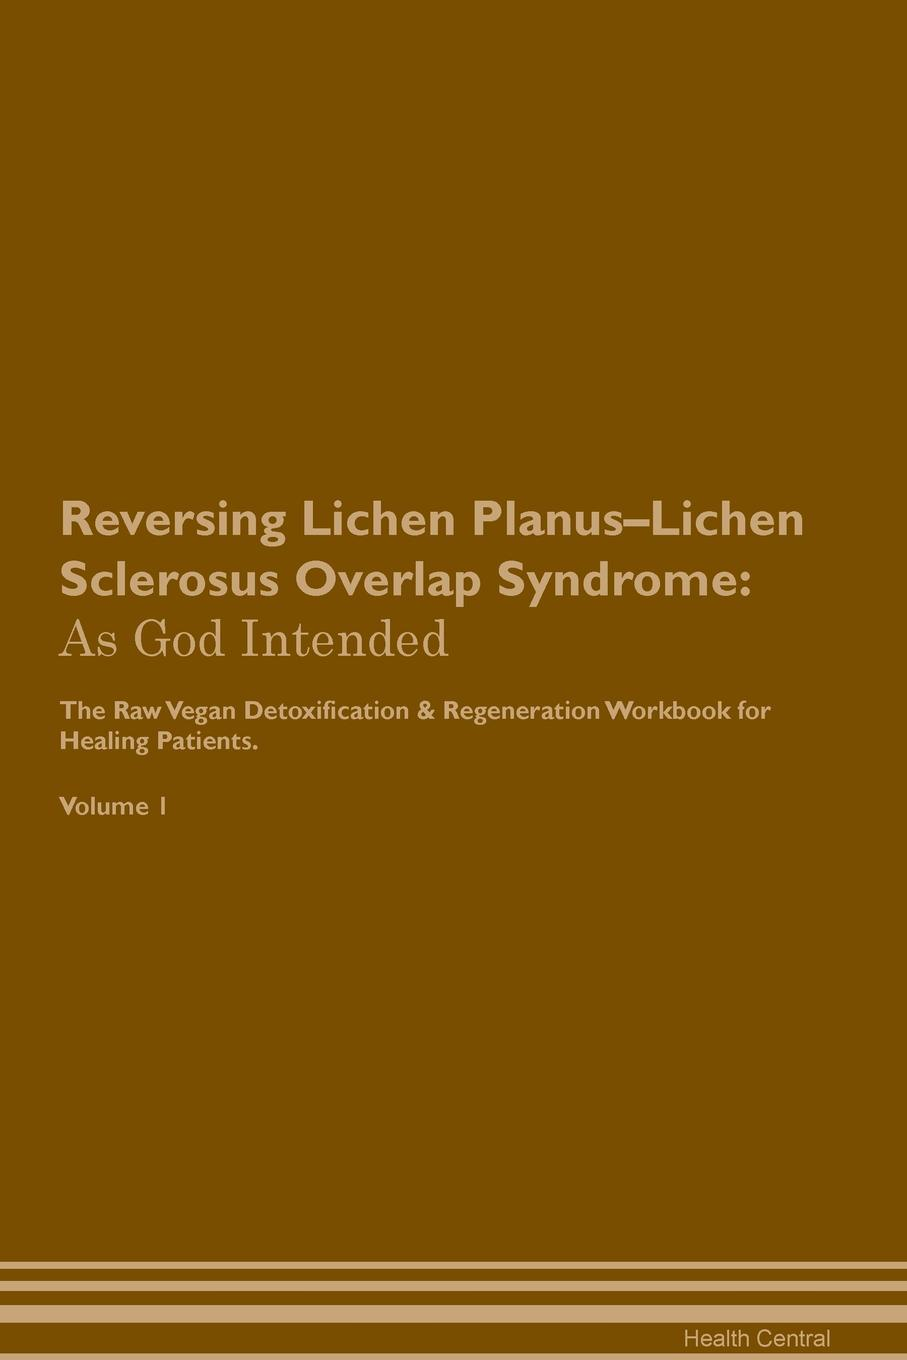 Фото - Health Central Reversing Lichen Planus-Lichen Sclerosus Overlap Syndrome. As God Intended The Raw Vegan Plant-Based Detoxification & Regeneration Workbook for Healing Patients. Volume 1 health central reversing lichen sclerosus overcoming cravings the raw vegan plant based detoxification regeneration workbook for healing patients volume 3